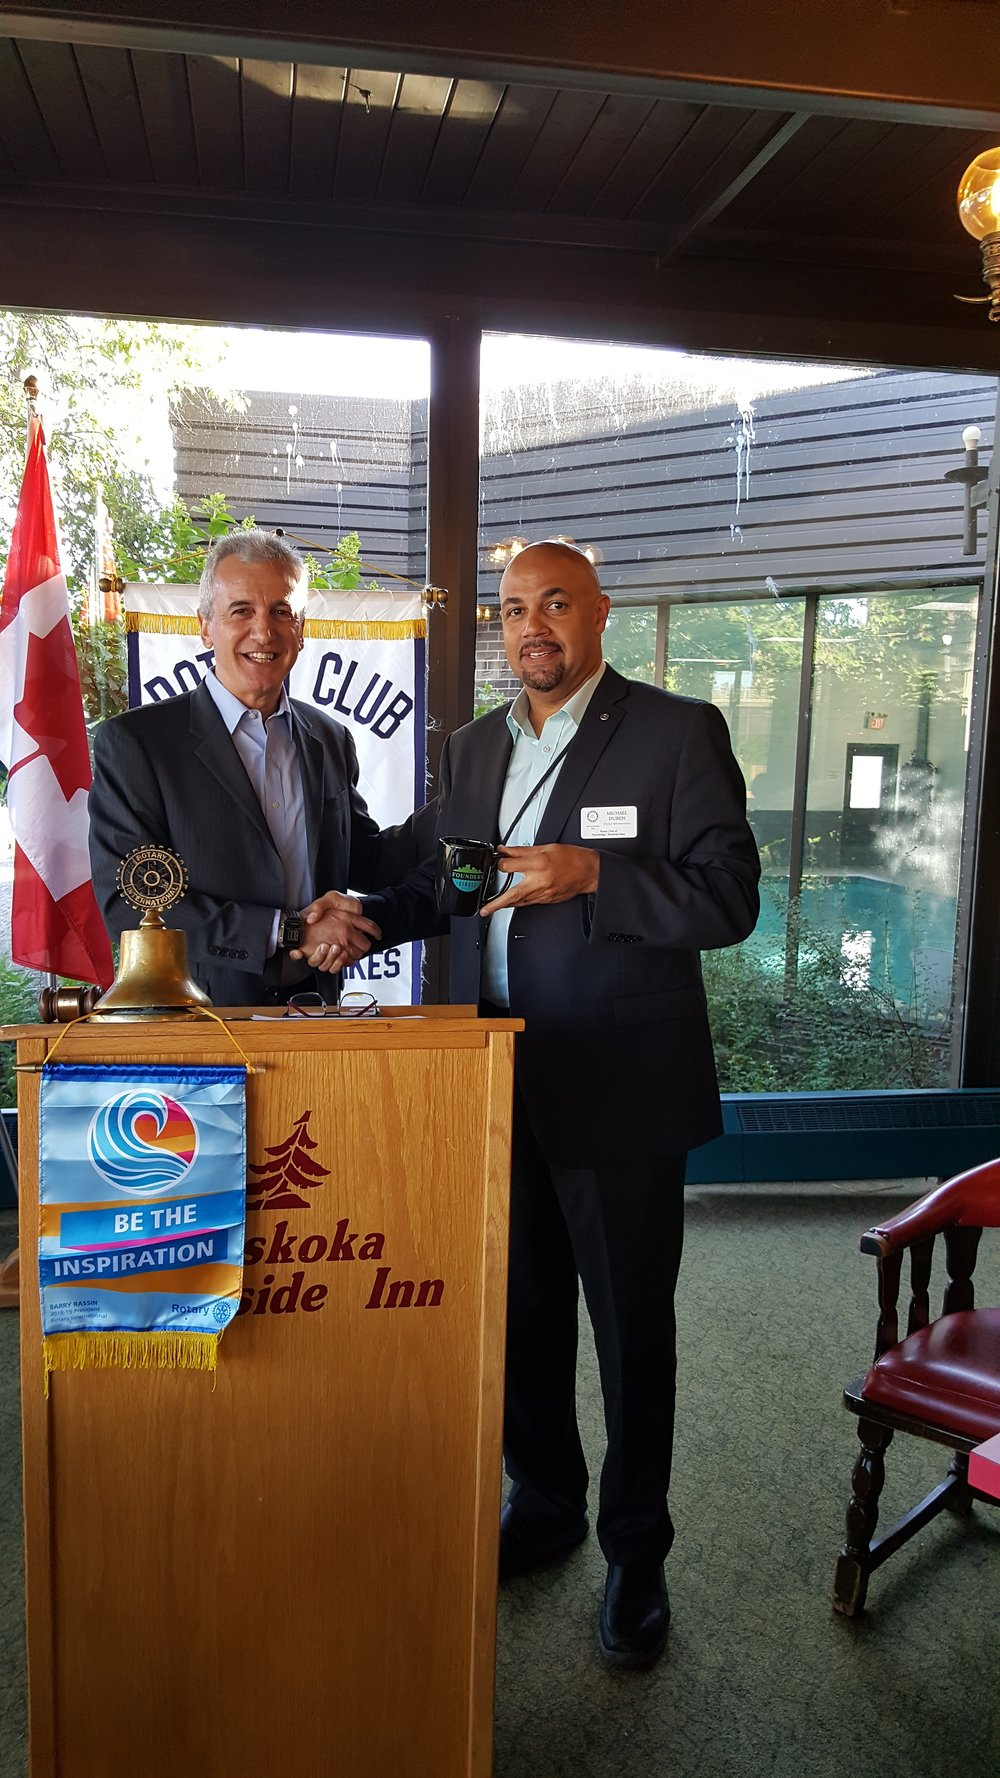 Rick Dalmazzi presenting the Founders Circle mug to Michael Duben who is the Bracebridge Muskoka Lakes Rotary Club rep